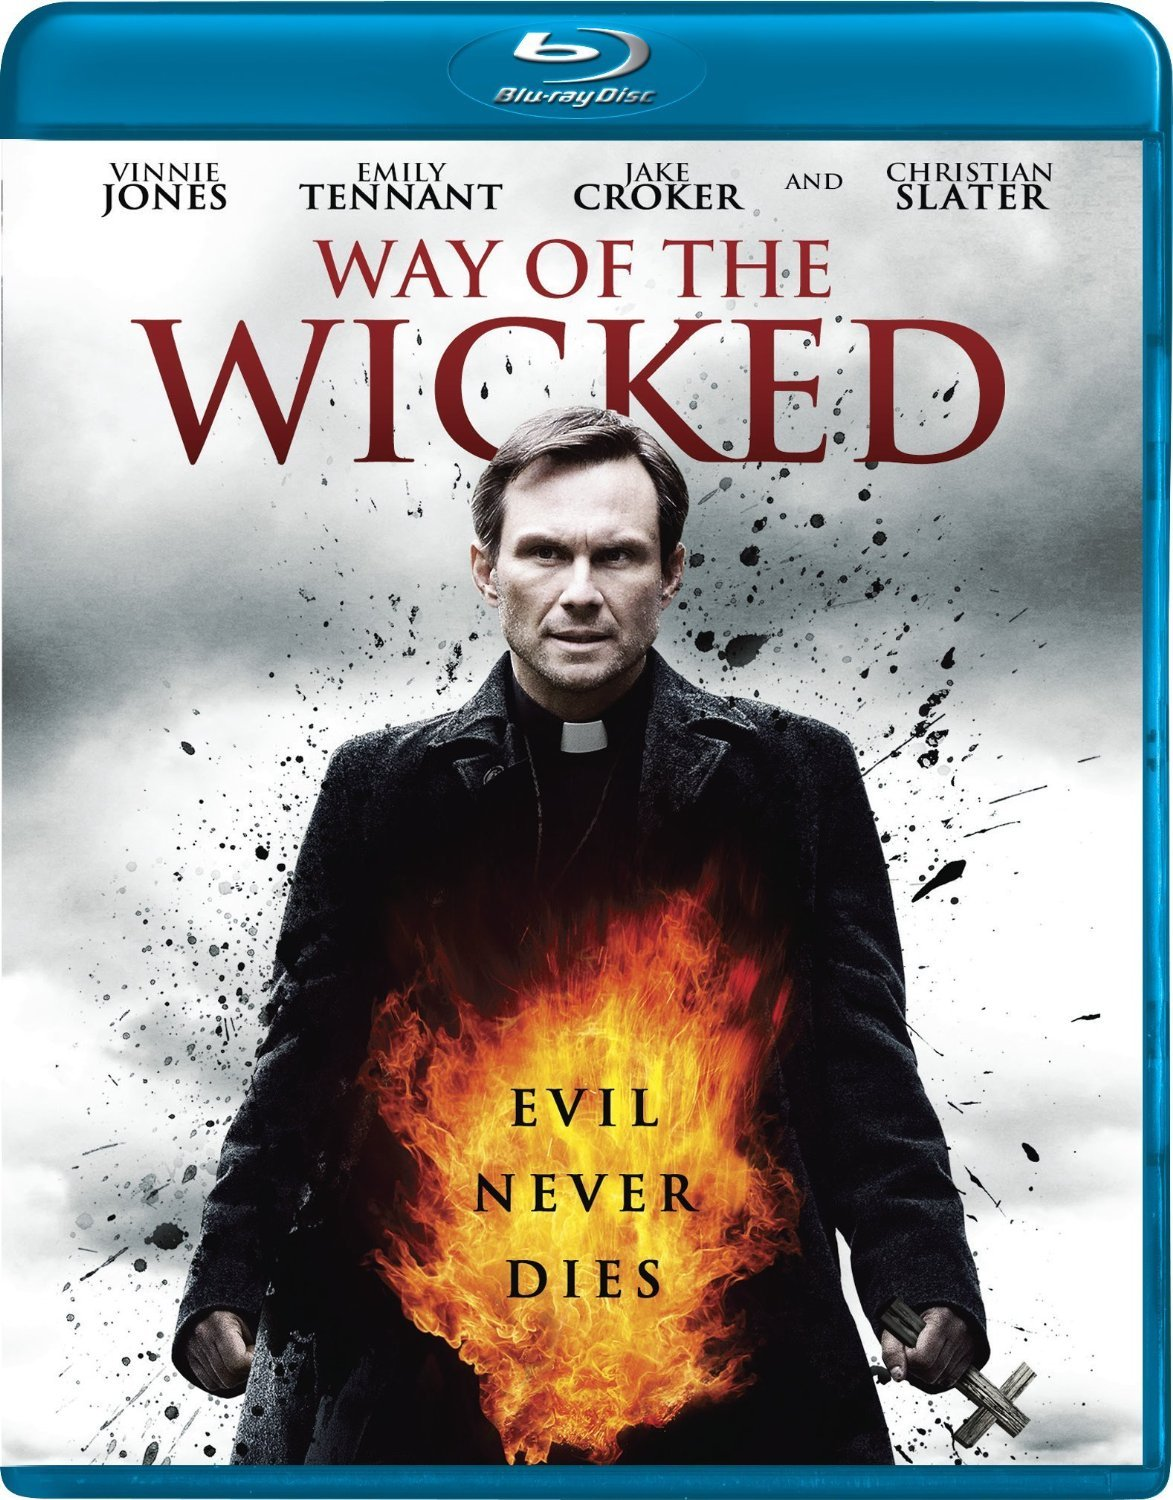 Way of the Wicked / Пътят на грешниците (2014)